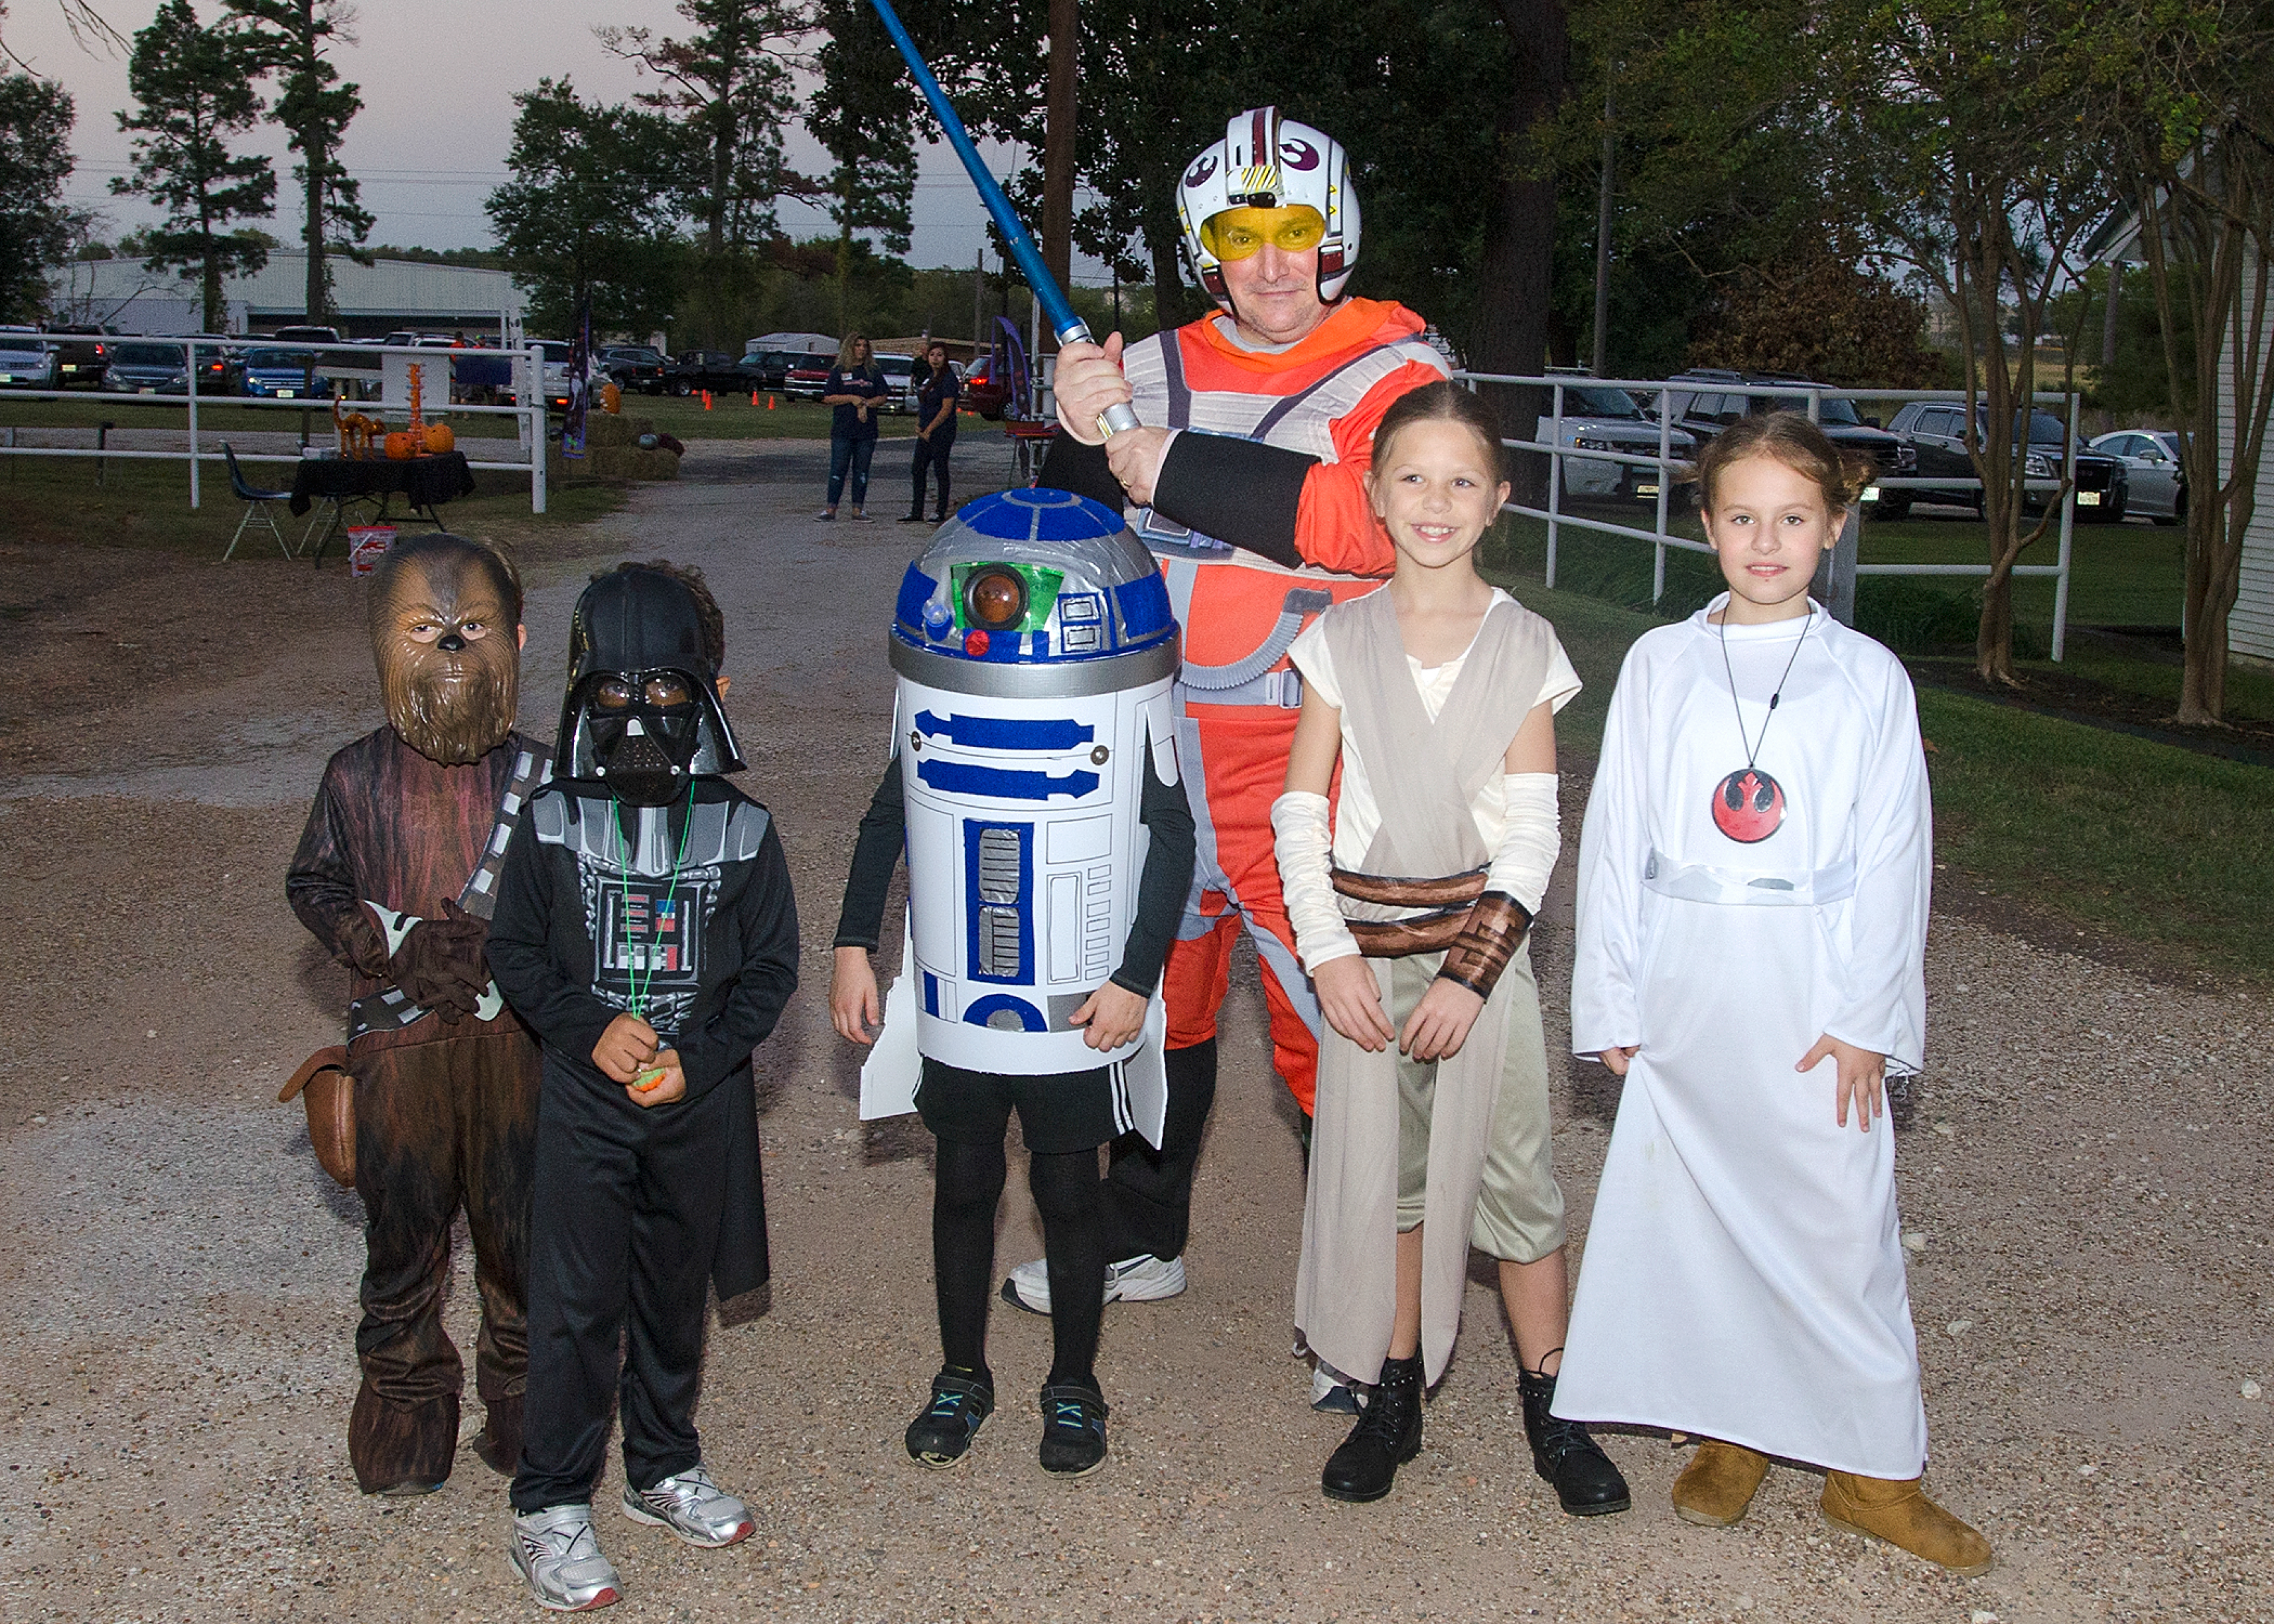 Fall Festival Costumes